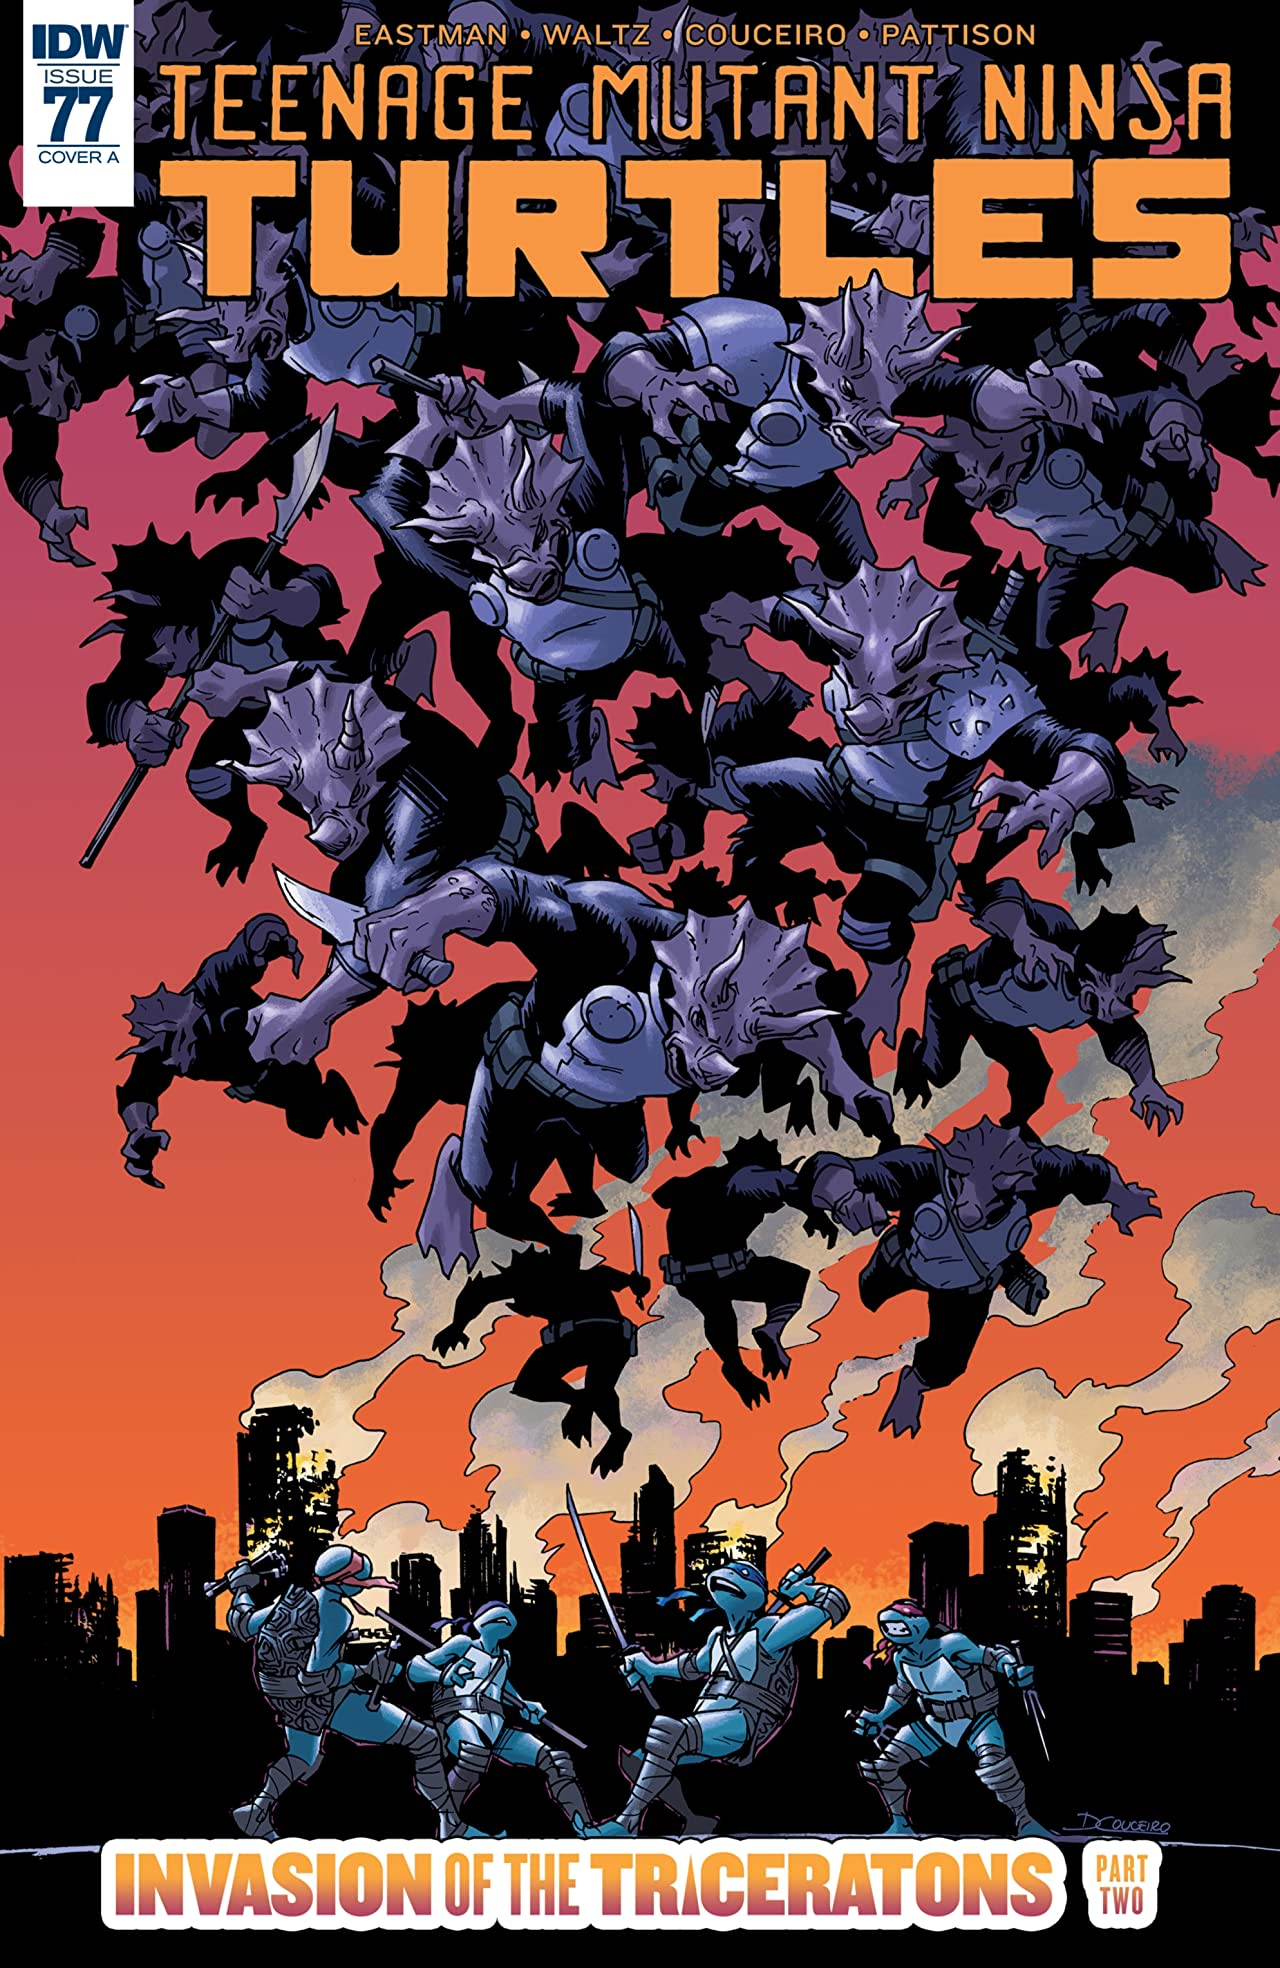 Teenage Mutant Ninja Turtles #77